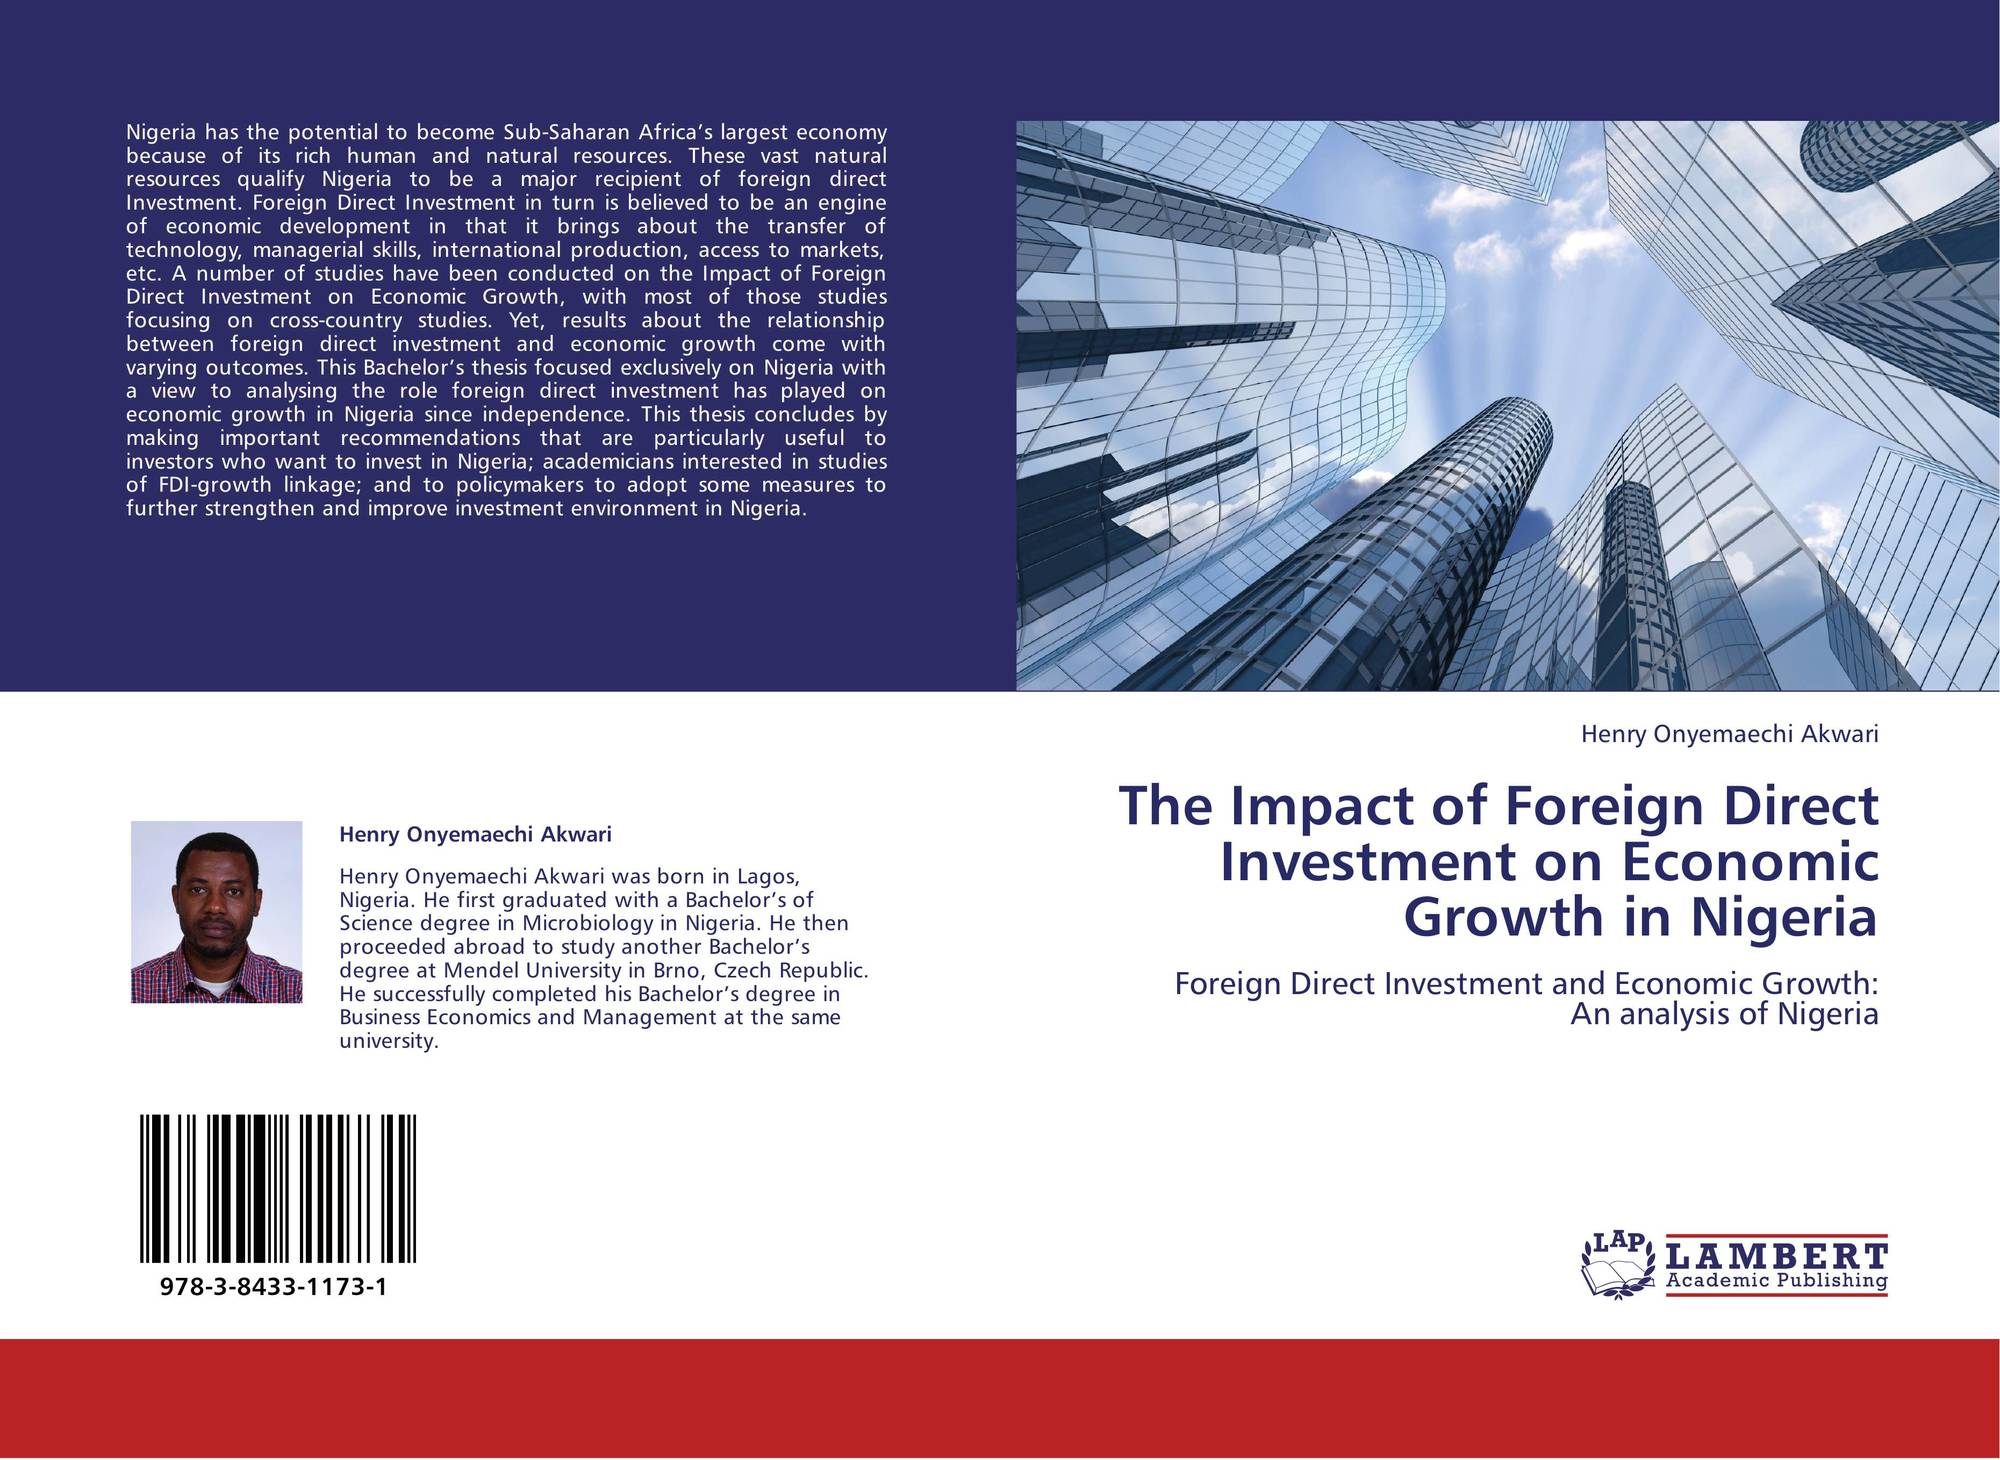 relationship between foreign direct investment and growth 1 causal links between trade, foreign direct investment and economic growth for bangladesh syed imran ali meerza 1 abstract: this study investigates empirically the causal relationship between trade, foreign direct investment (fdi) and.